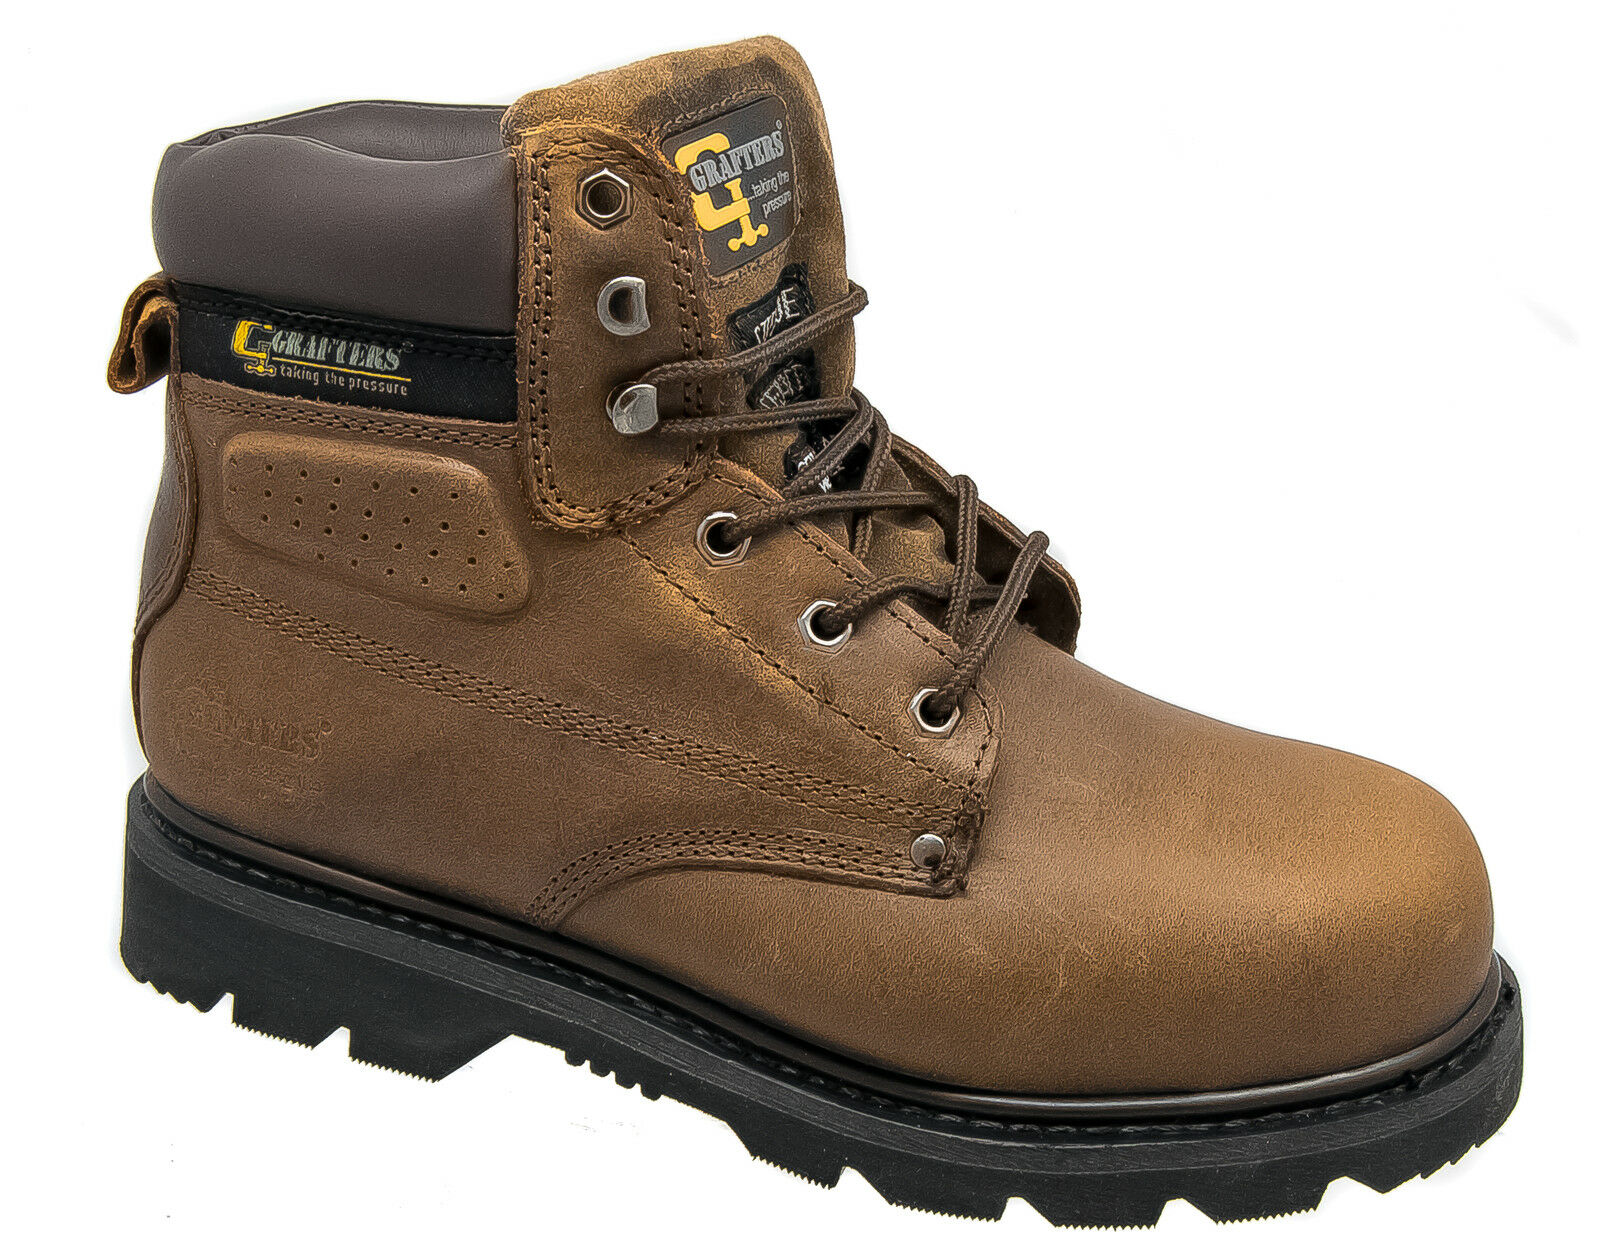 Hombre Safety Safety Safety Work botas / Marrón Leather Steel Toe Cap Goodyear Soled Grafters 8ca99b